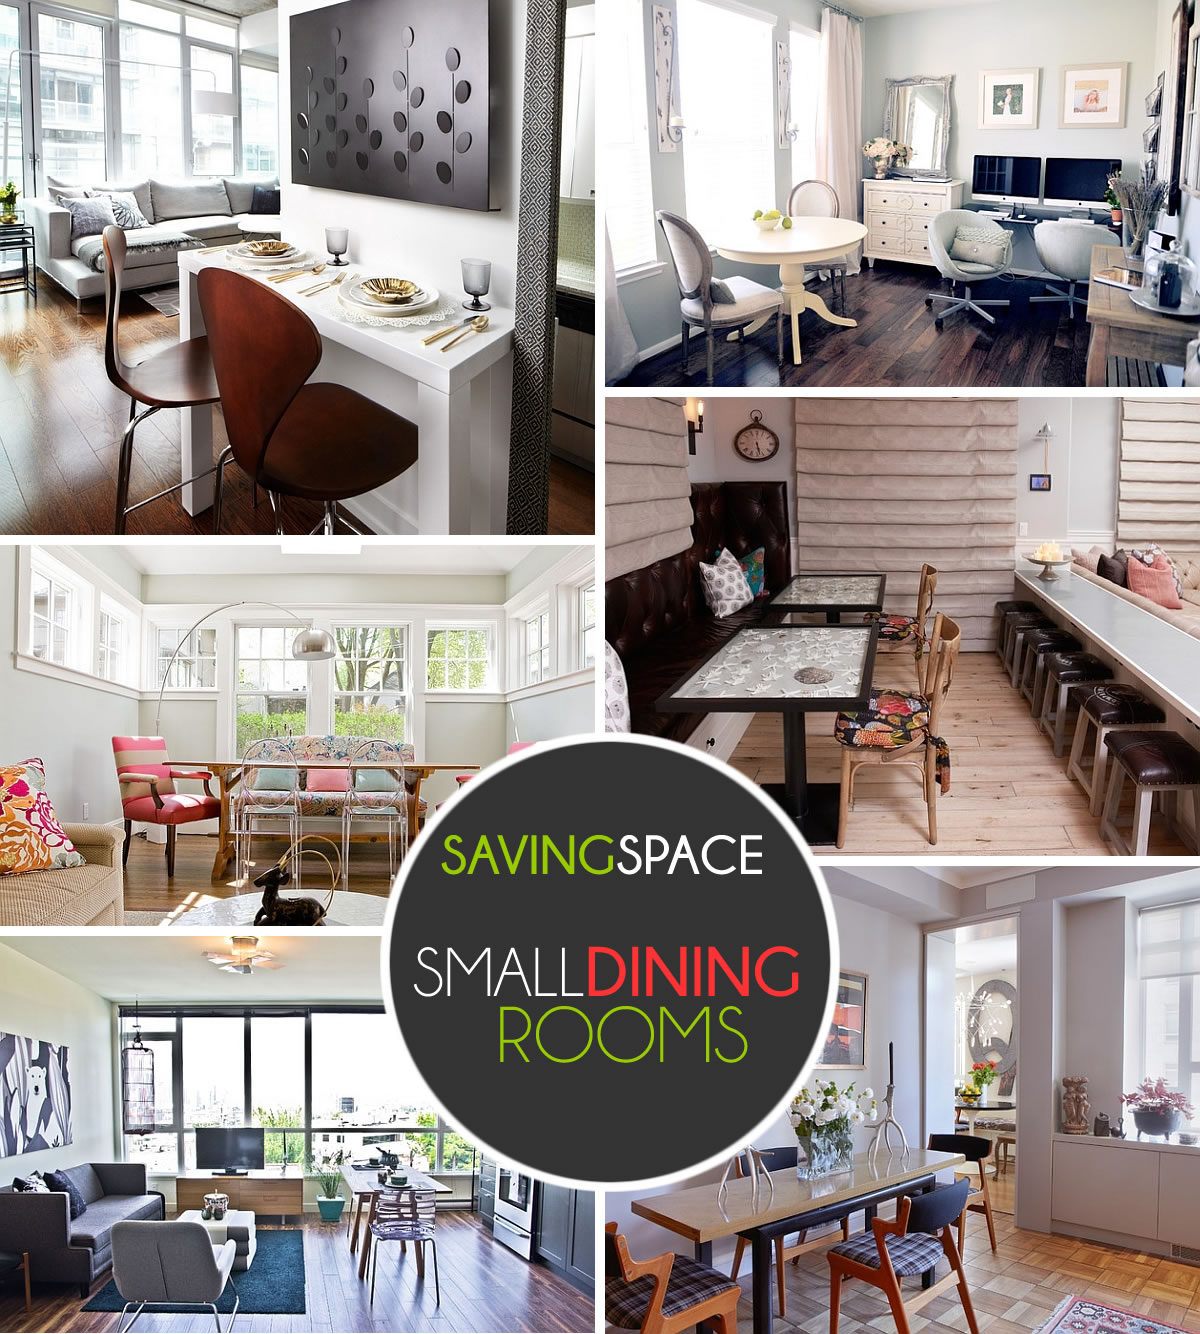 Small dining rooms that save up on space - What to do with small spaces set ...